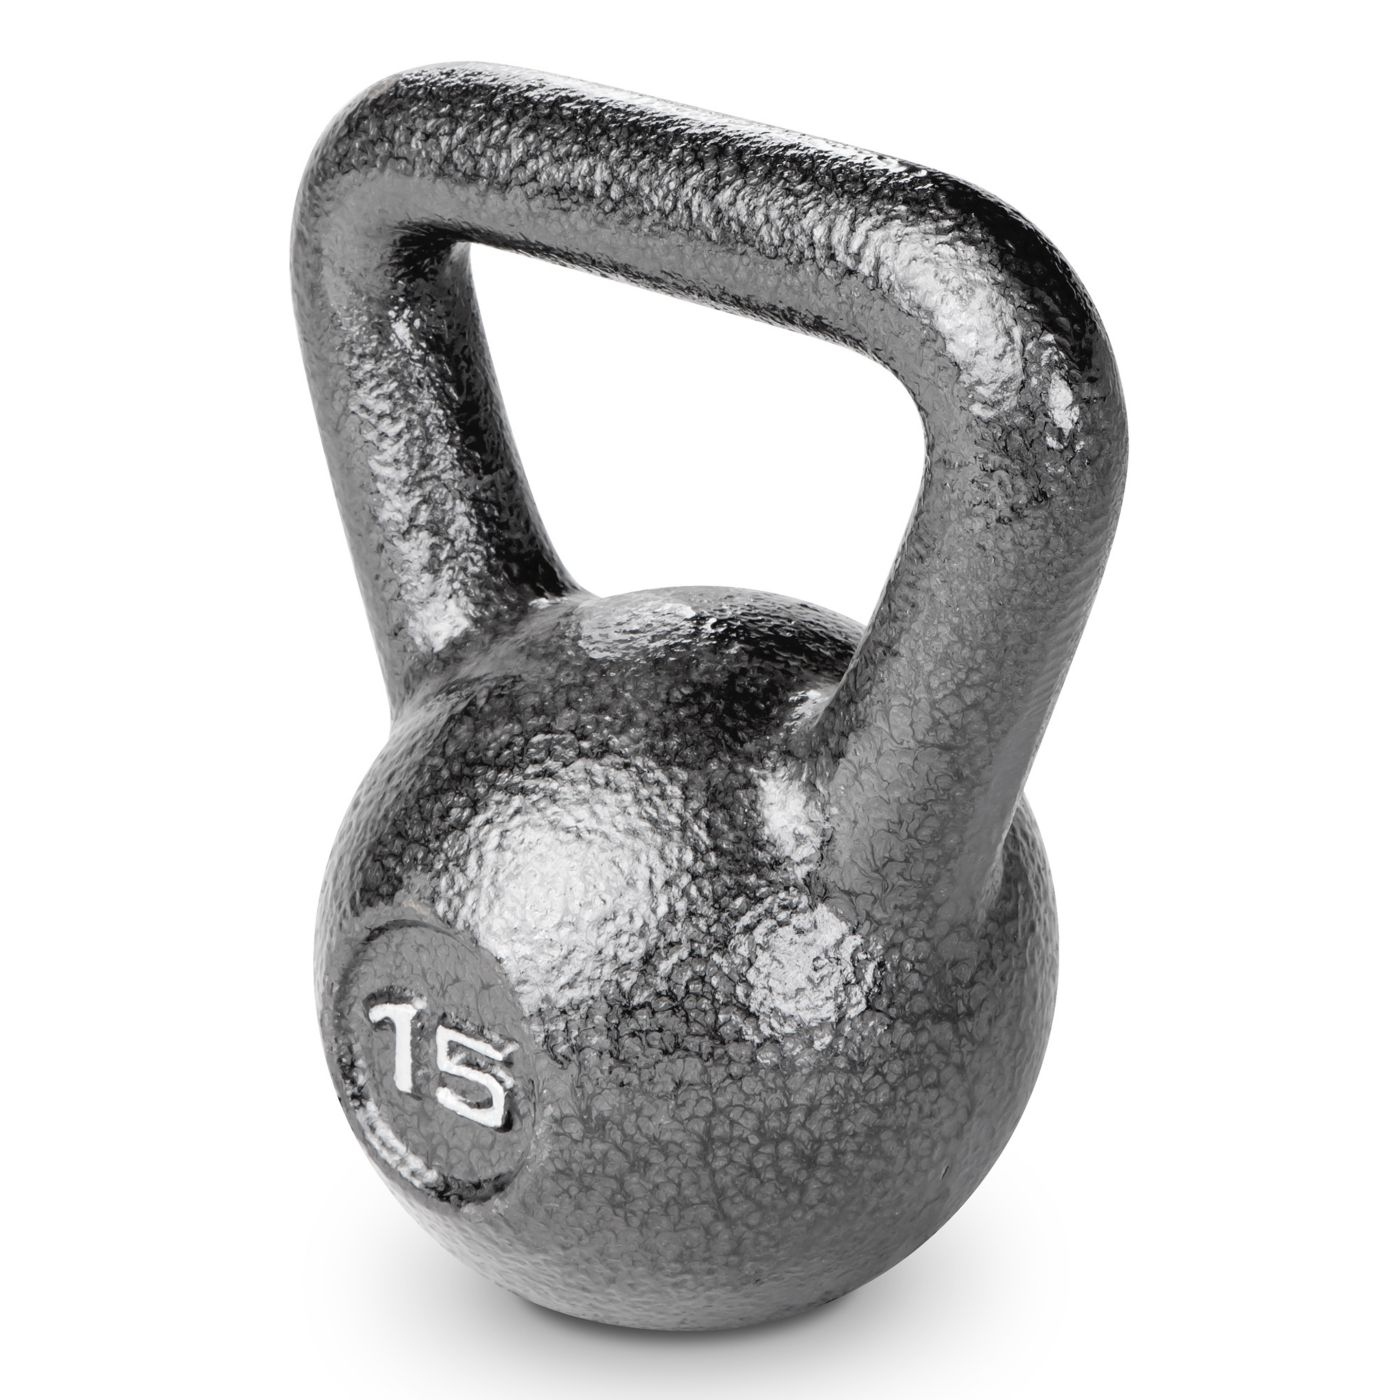 Marcy 15lb. Kettle Bell